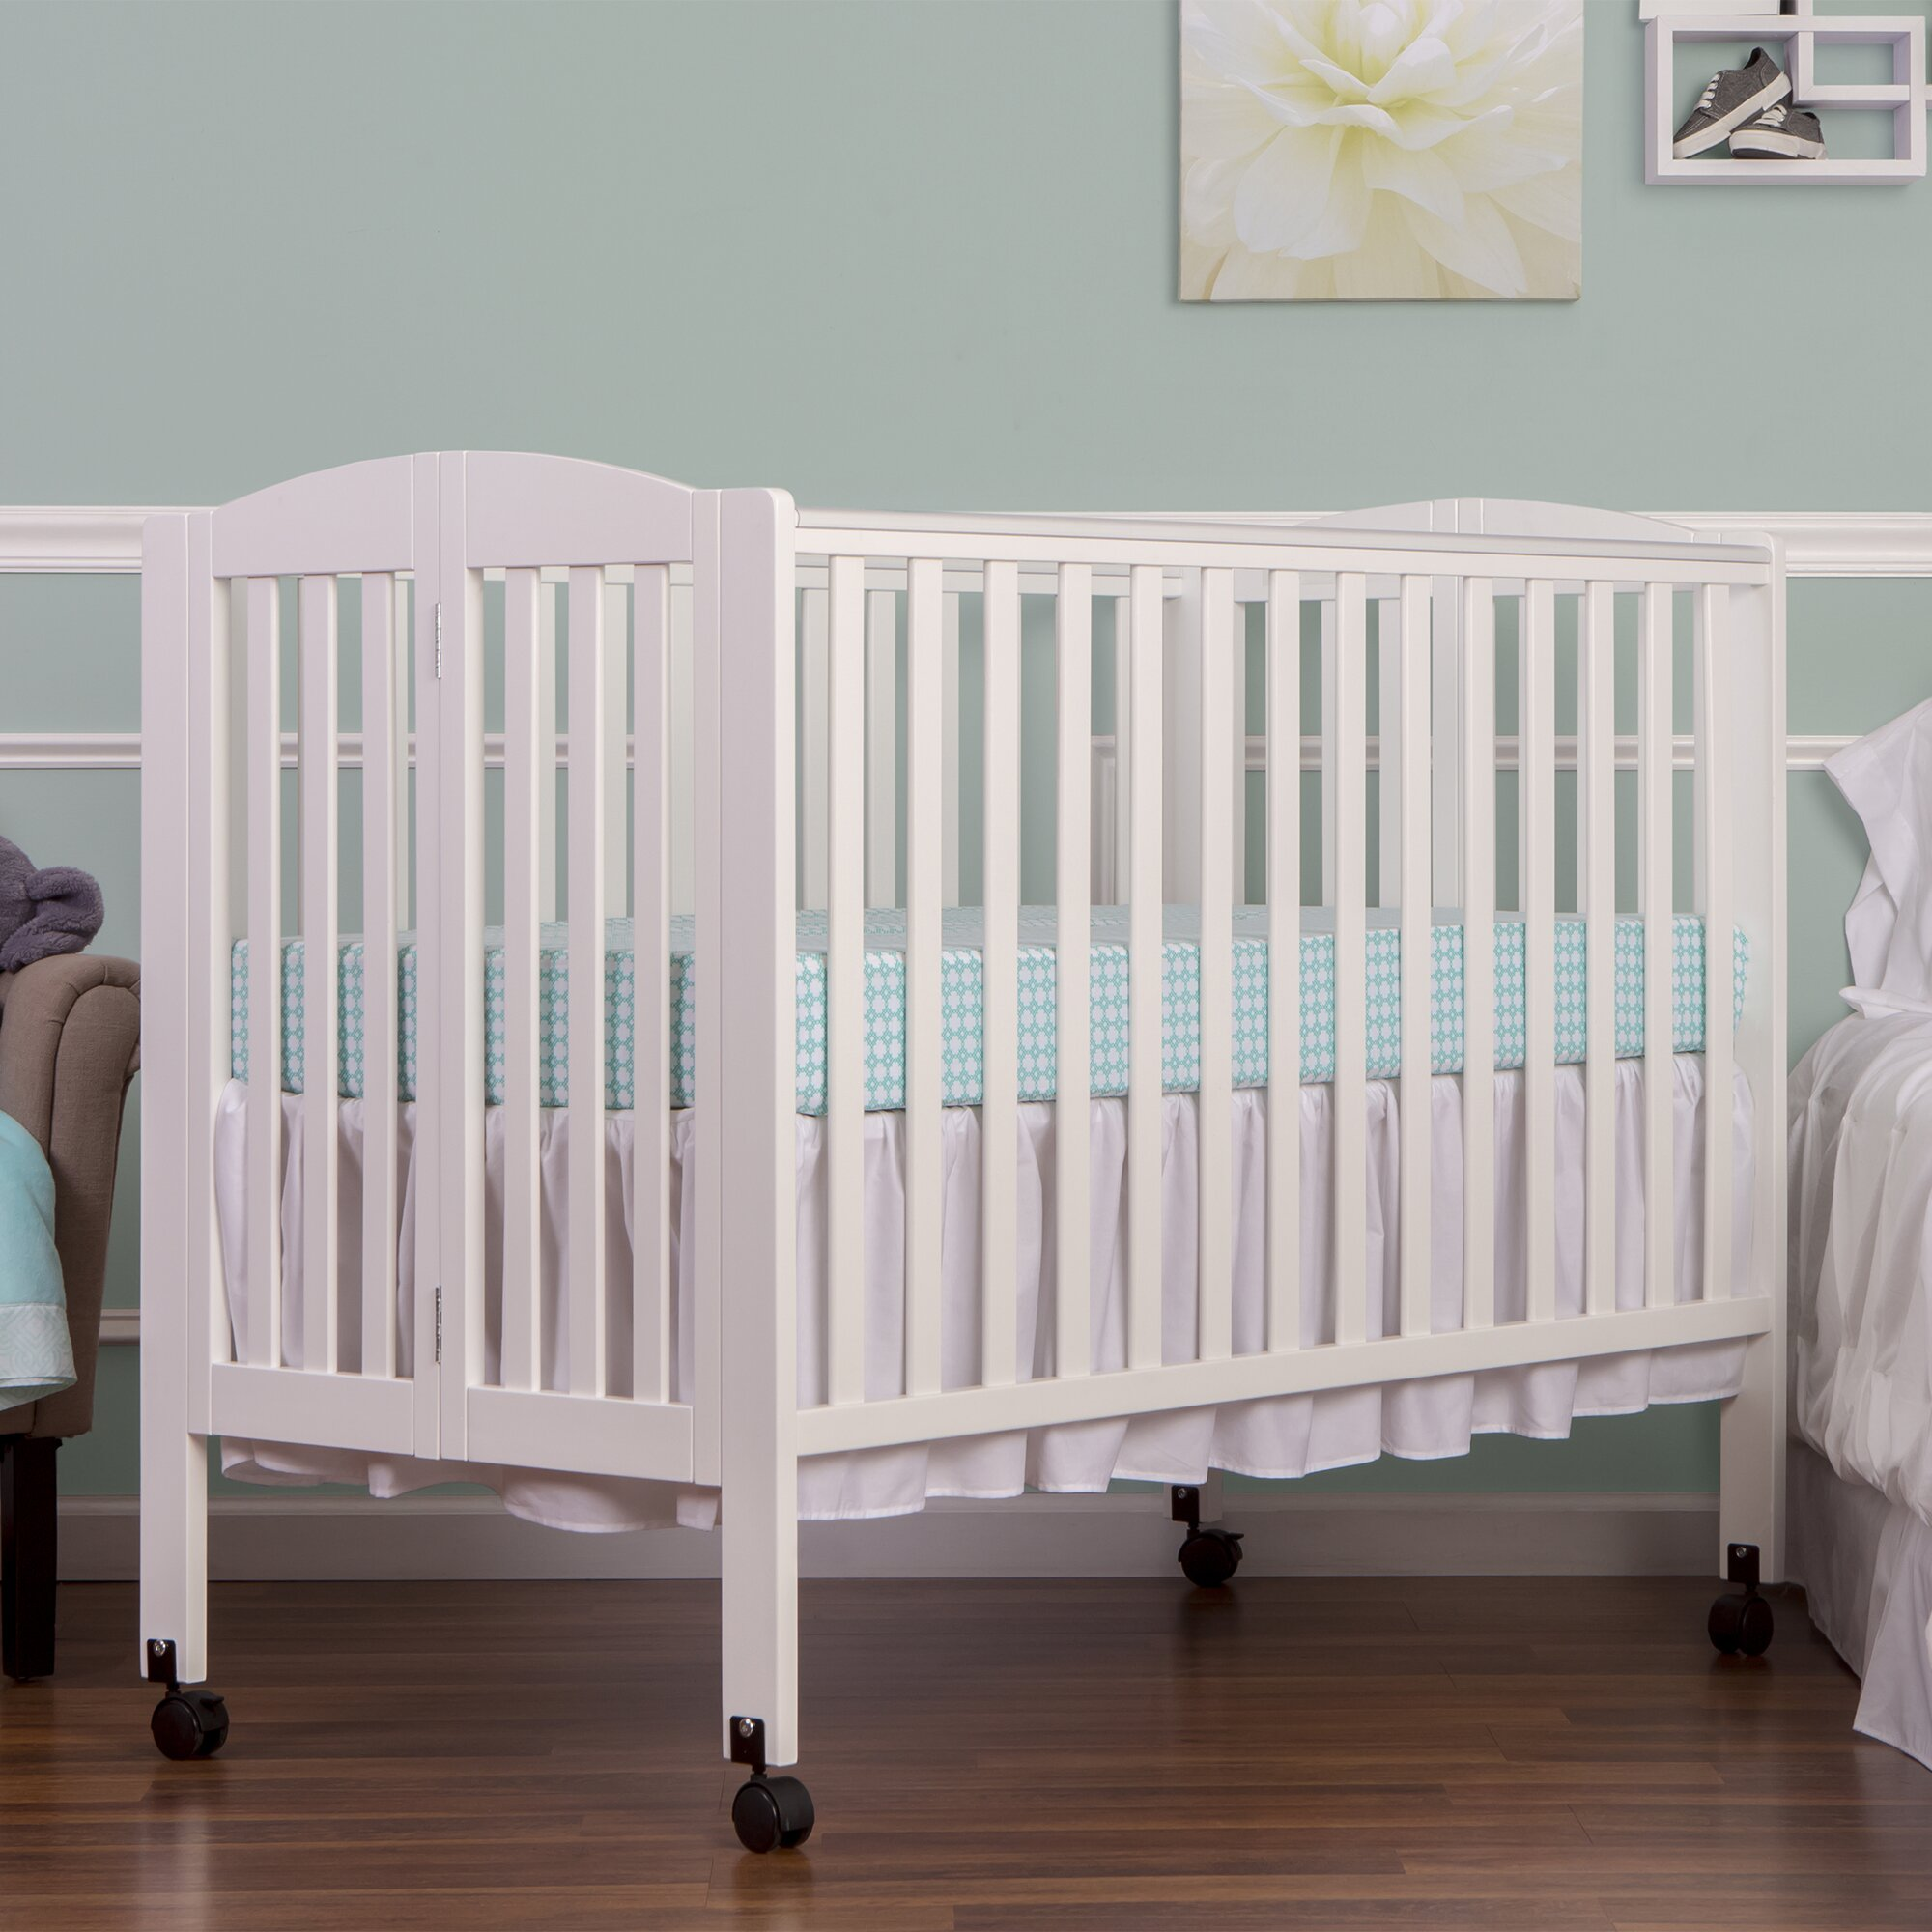 Used crib for sale edmonton - Dream On Me Full Size Folding Crib